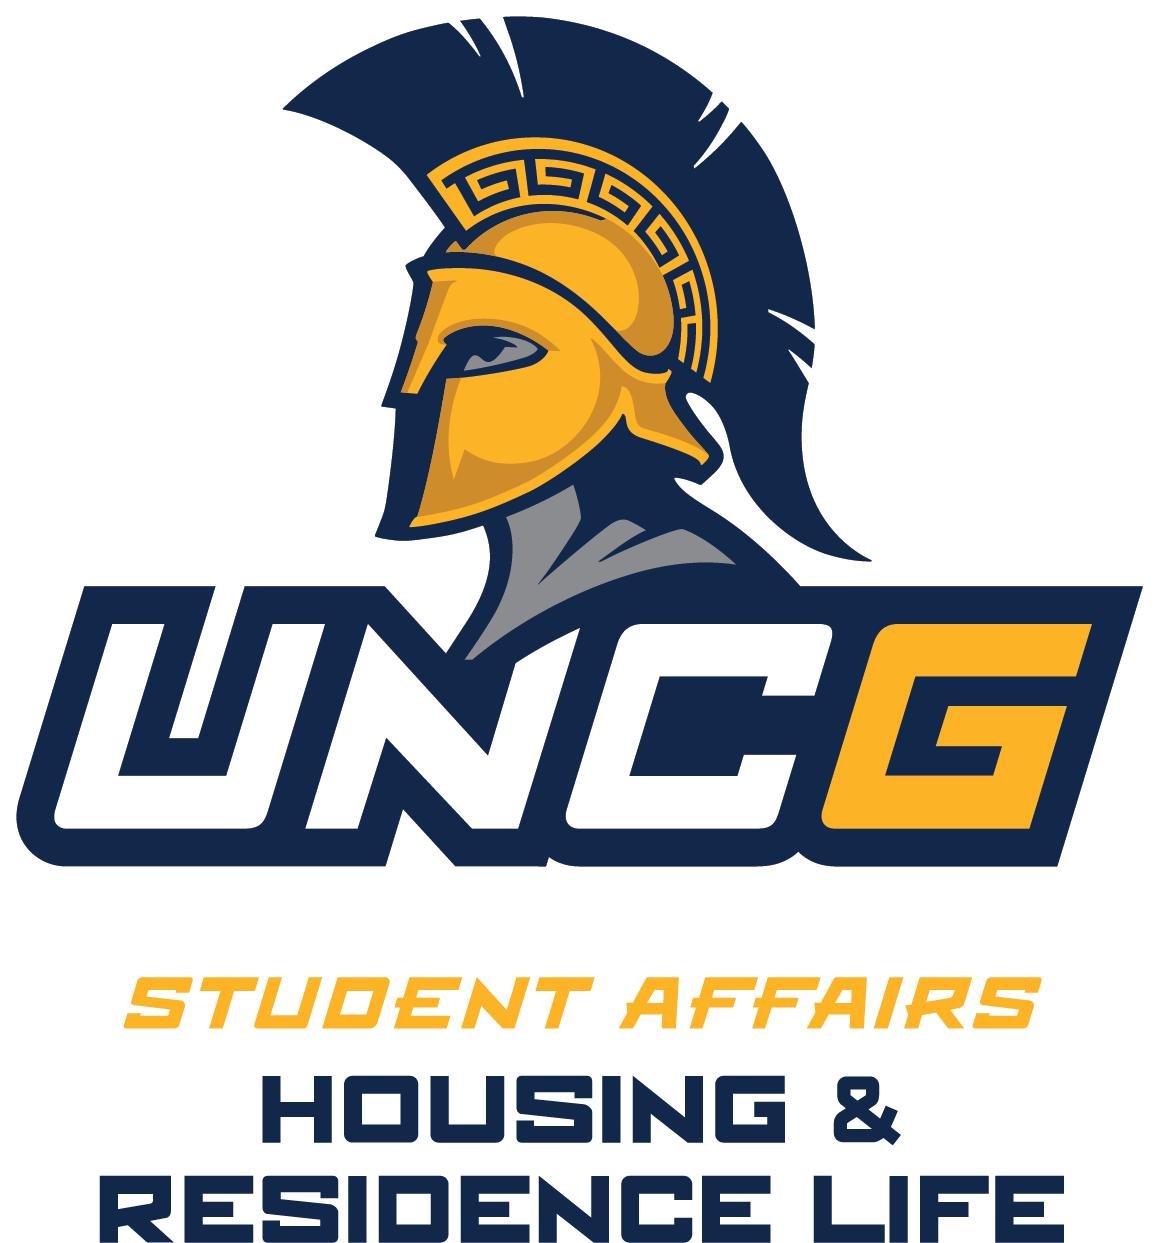 Uncg Spring 2022 Calendar.Mission Statement Housing And Residence Life At Uncg